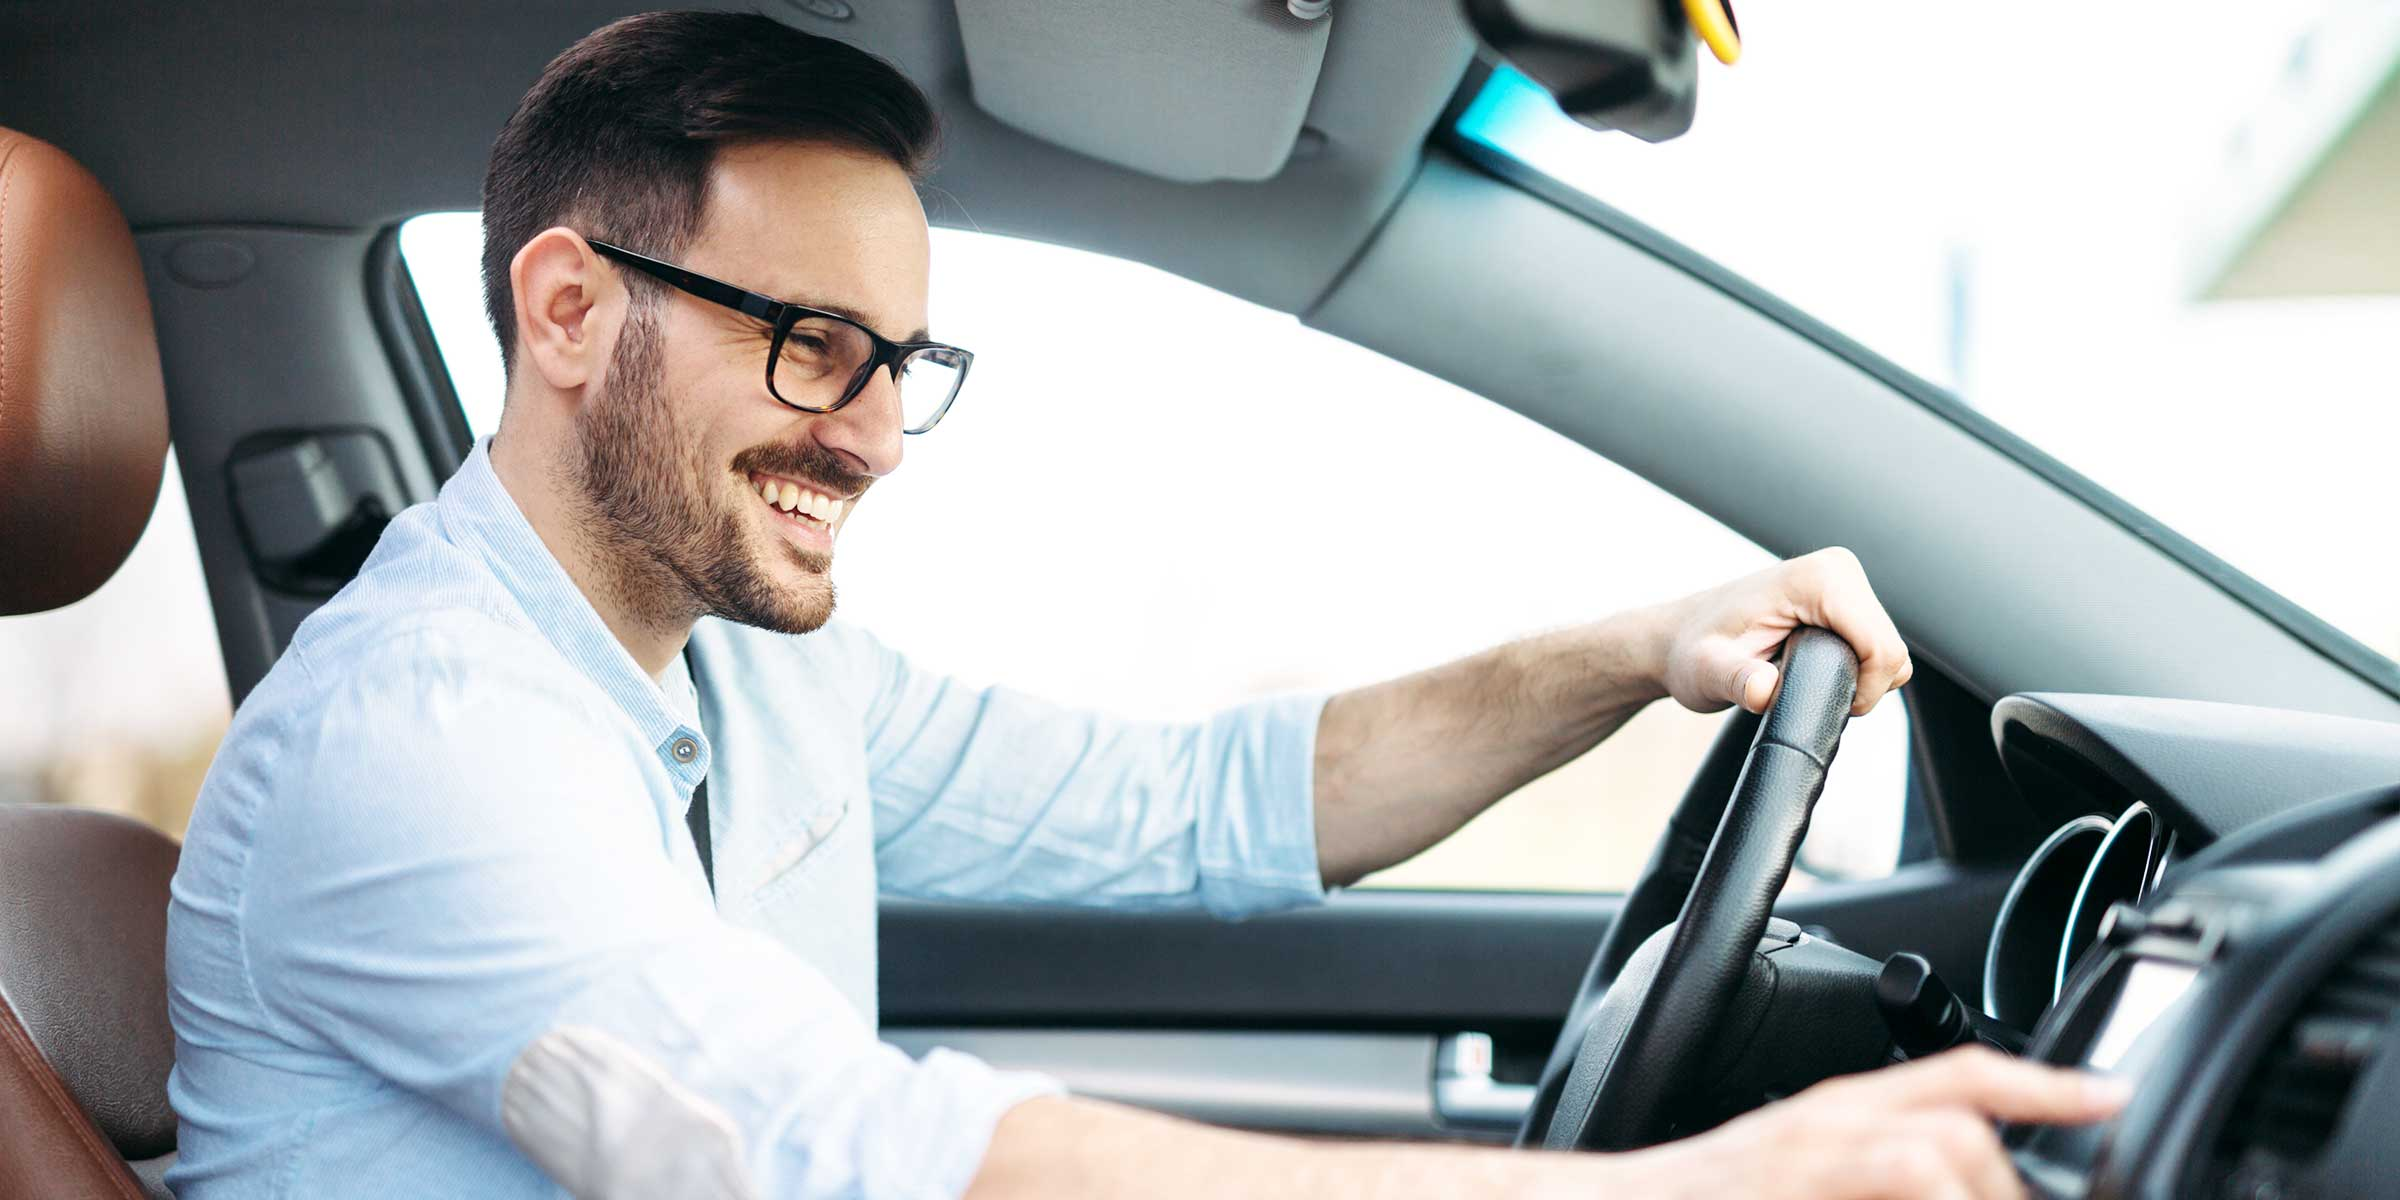 A smiling man with glasses driving a car